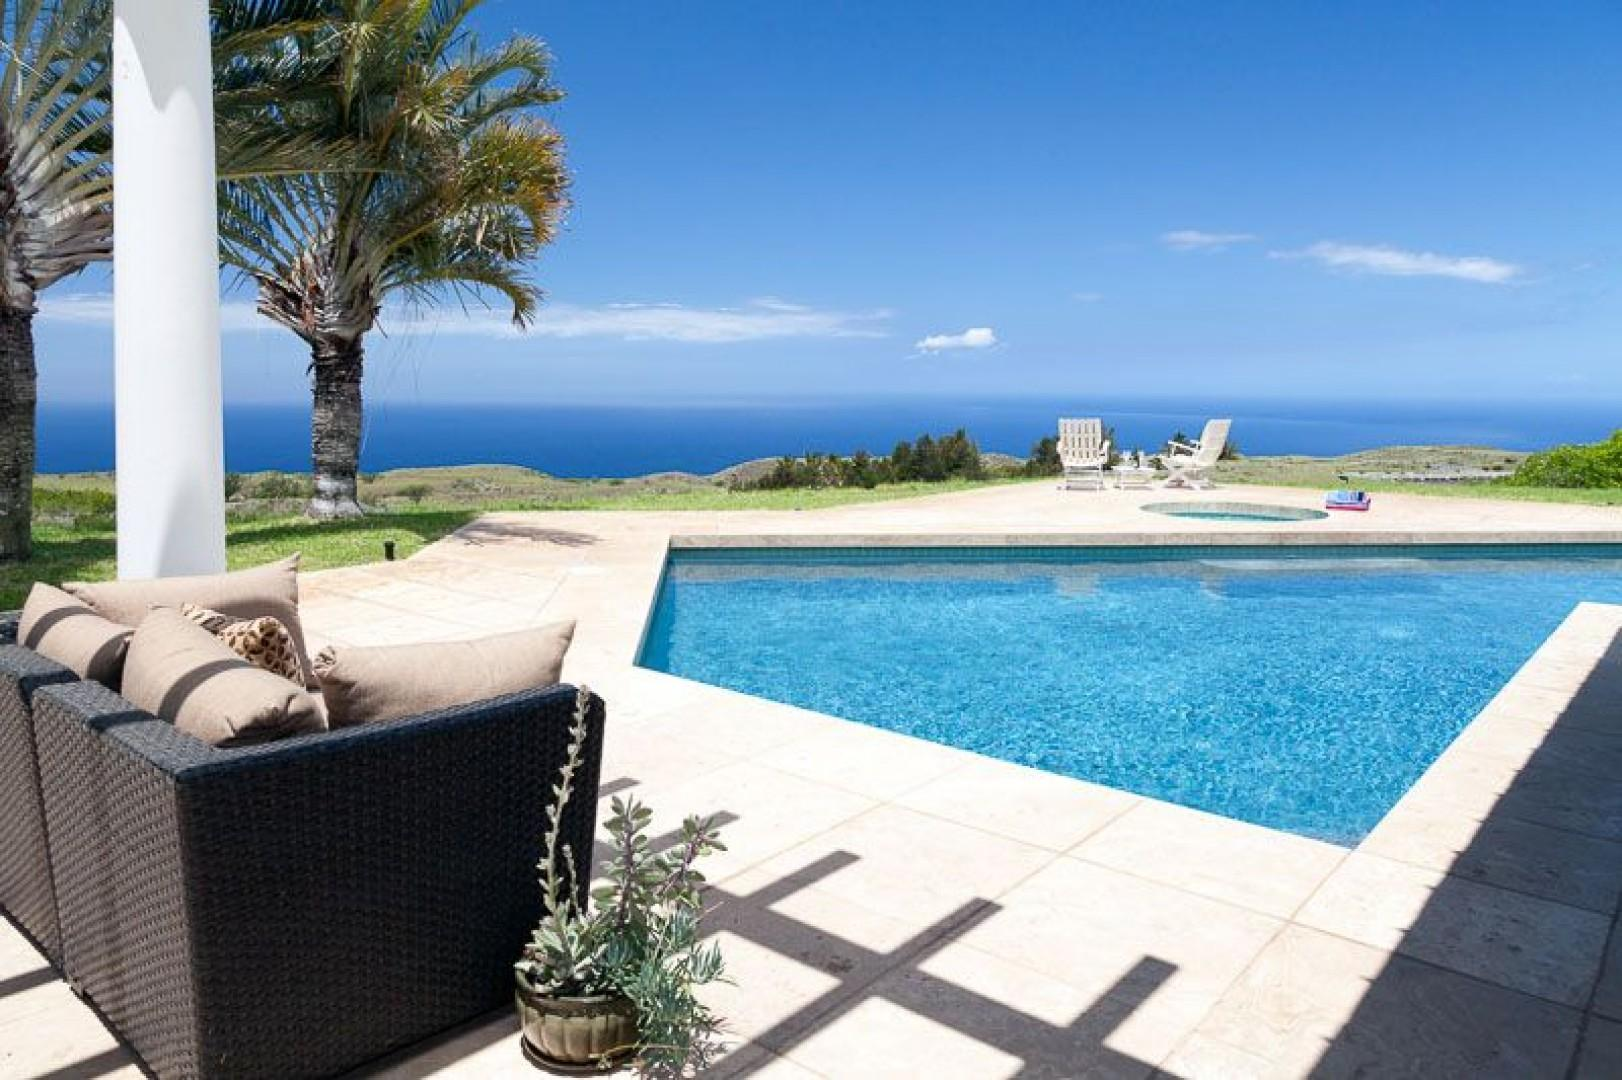 Enjoy a nap or read a book while overlooking the ocean